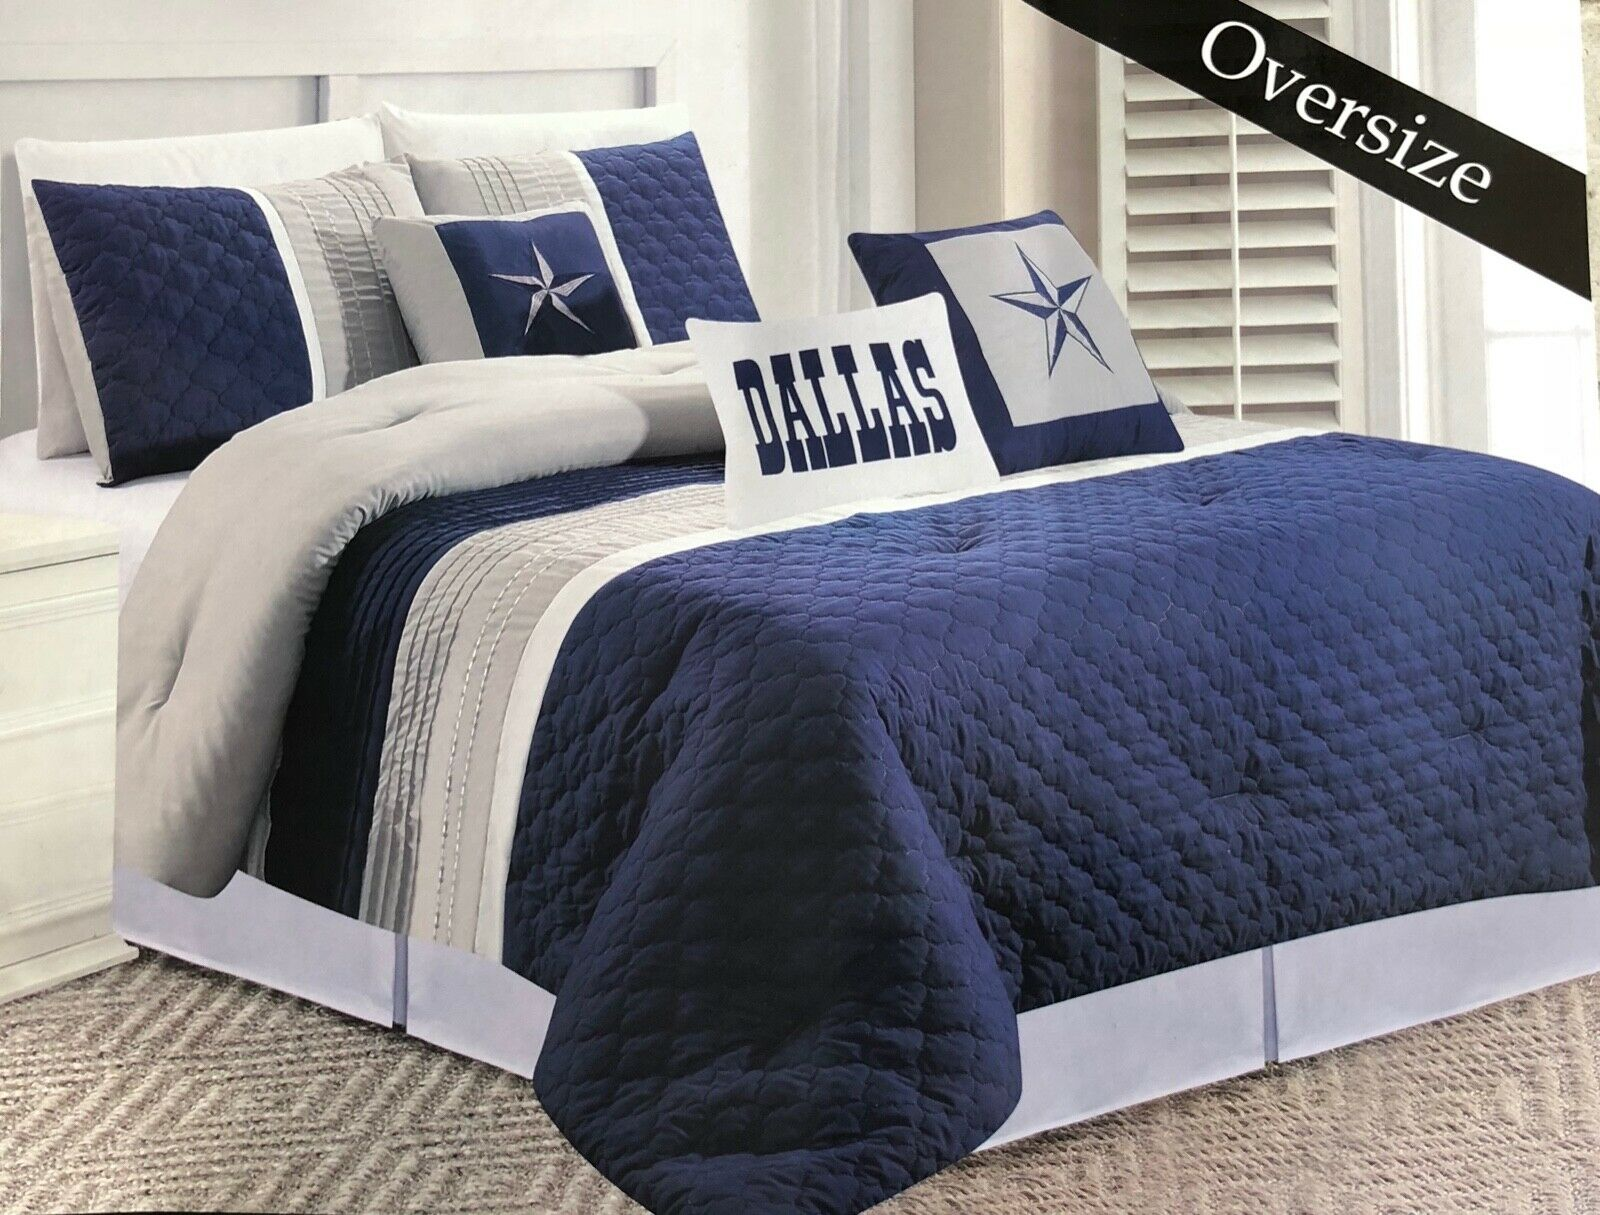 dallas cowboys western star design quilt bedspread